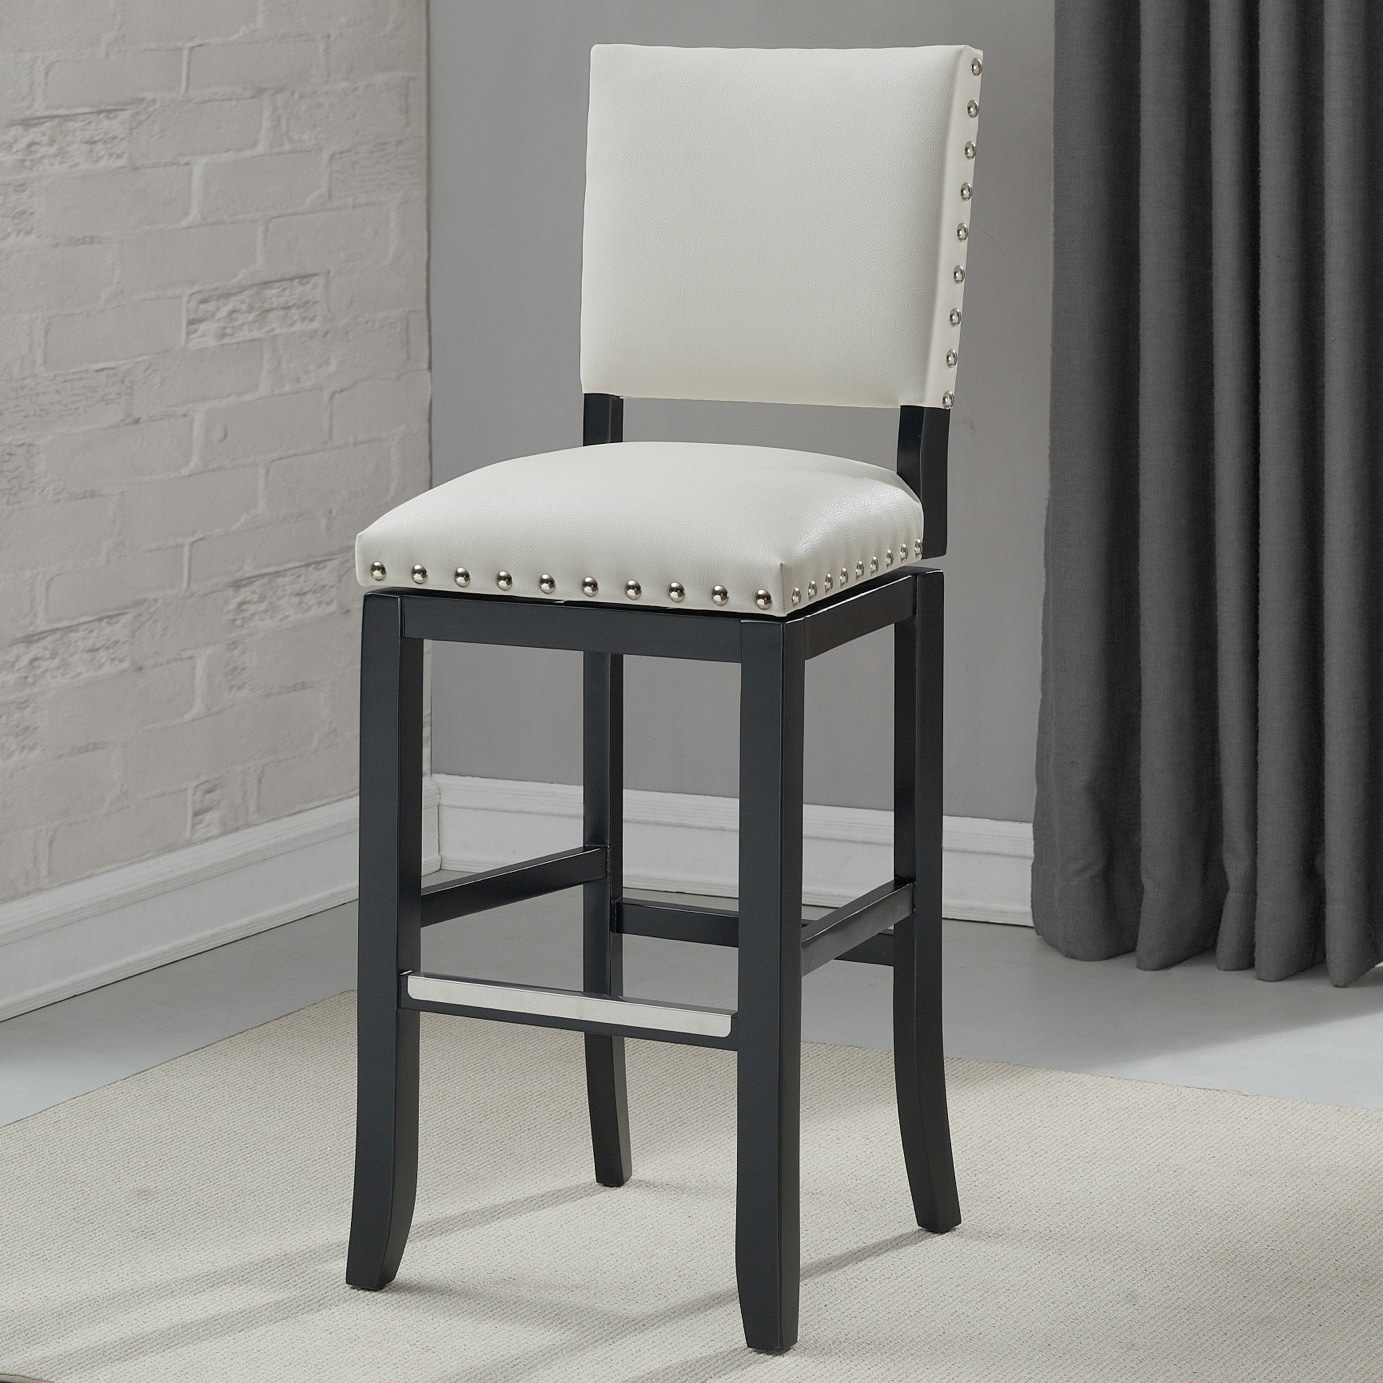 Zenith 26 Inch Nailhead Trim White Bonded Leather Counter Height Stool